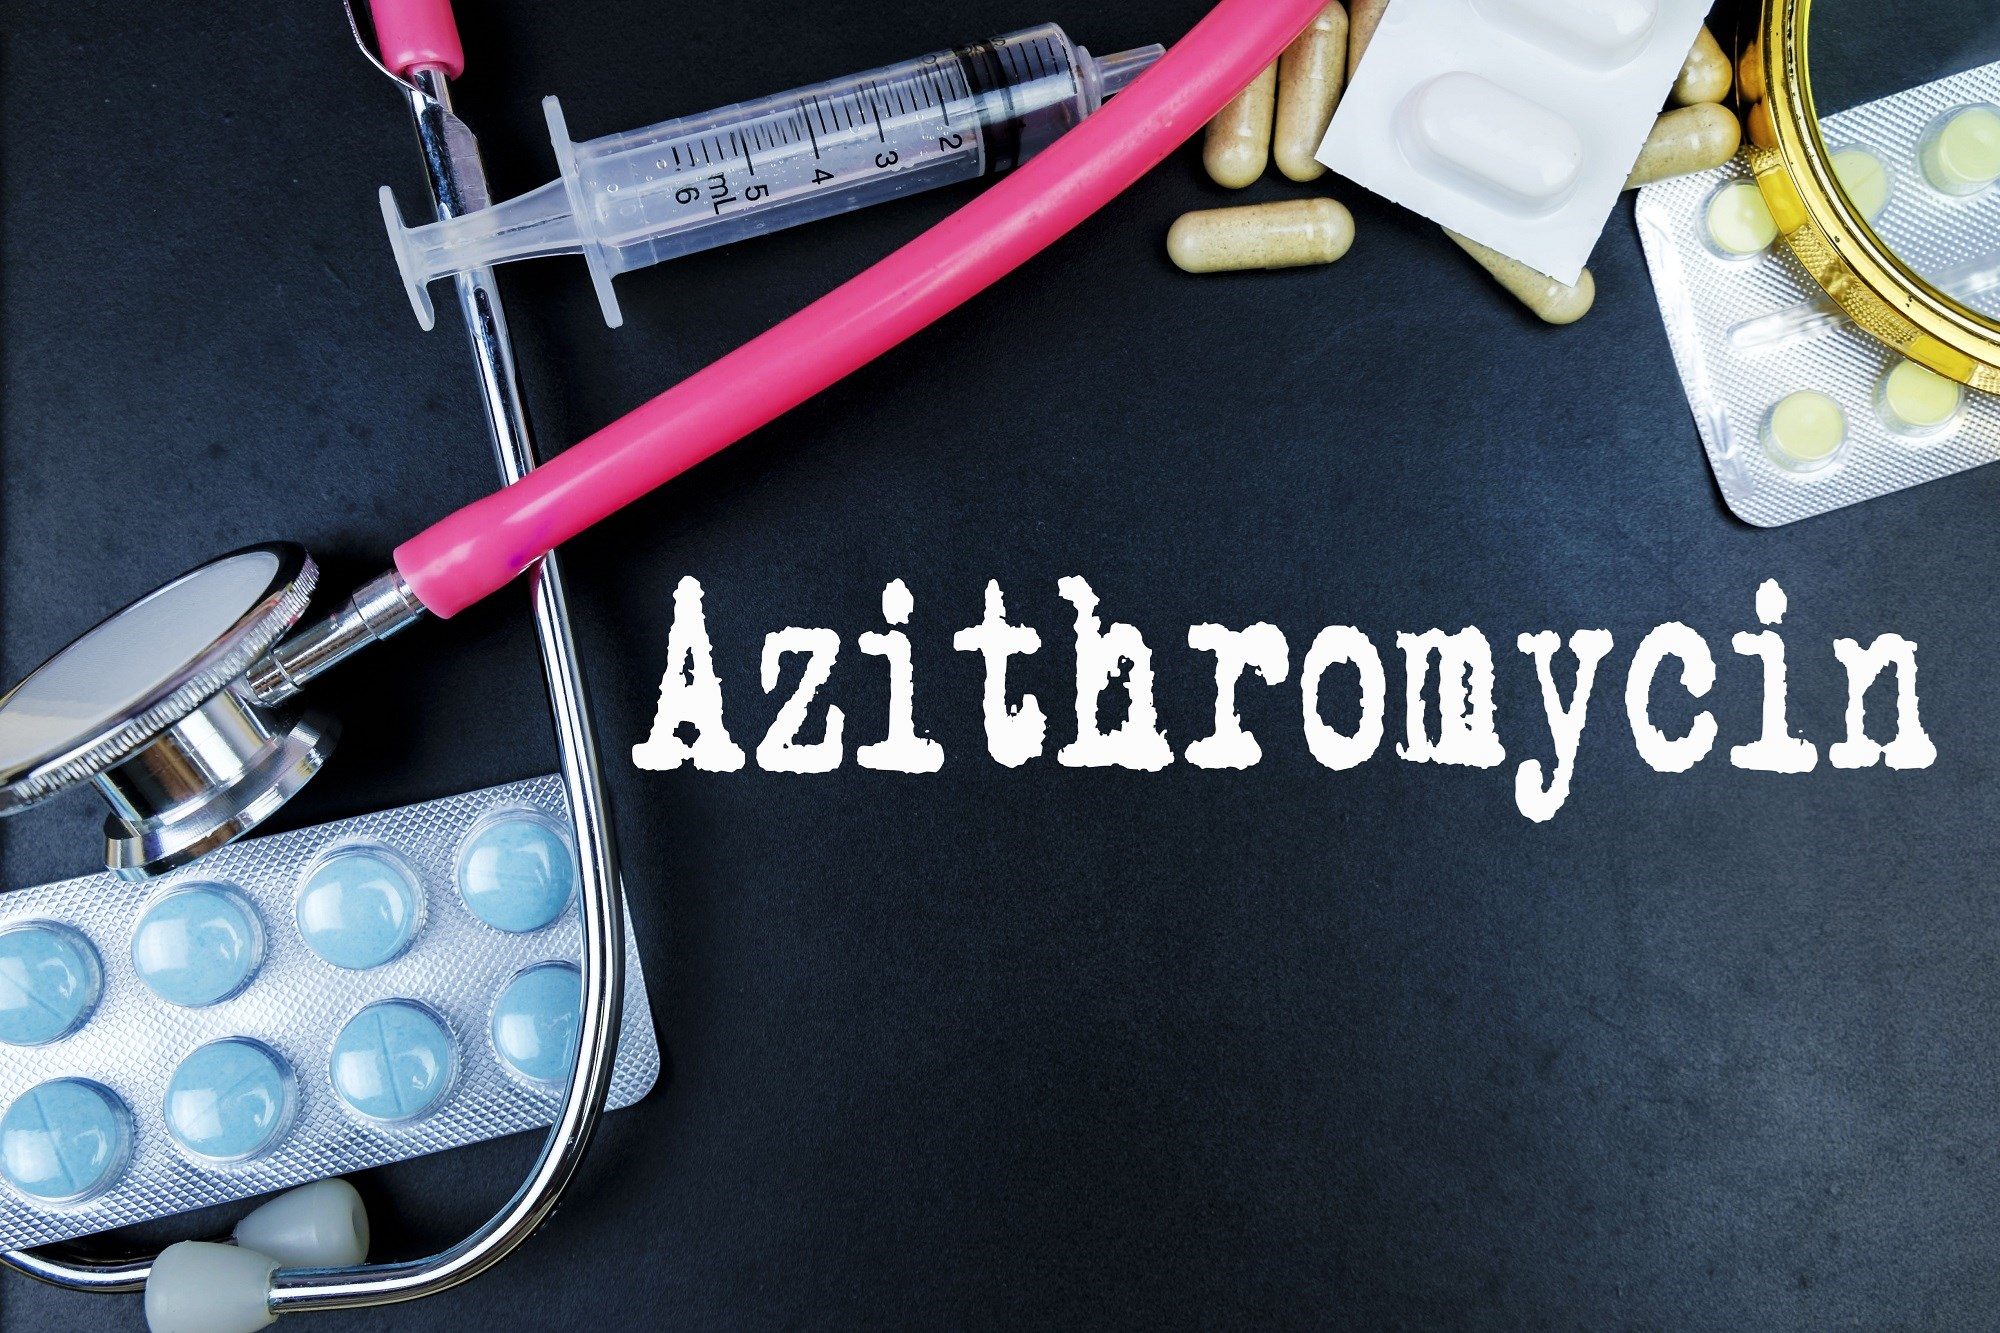 Investigators present first-time evidence for the clinical benefits of early target attainment for azithromycin therapy in children.